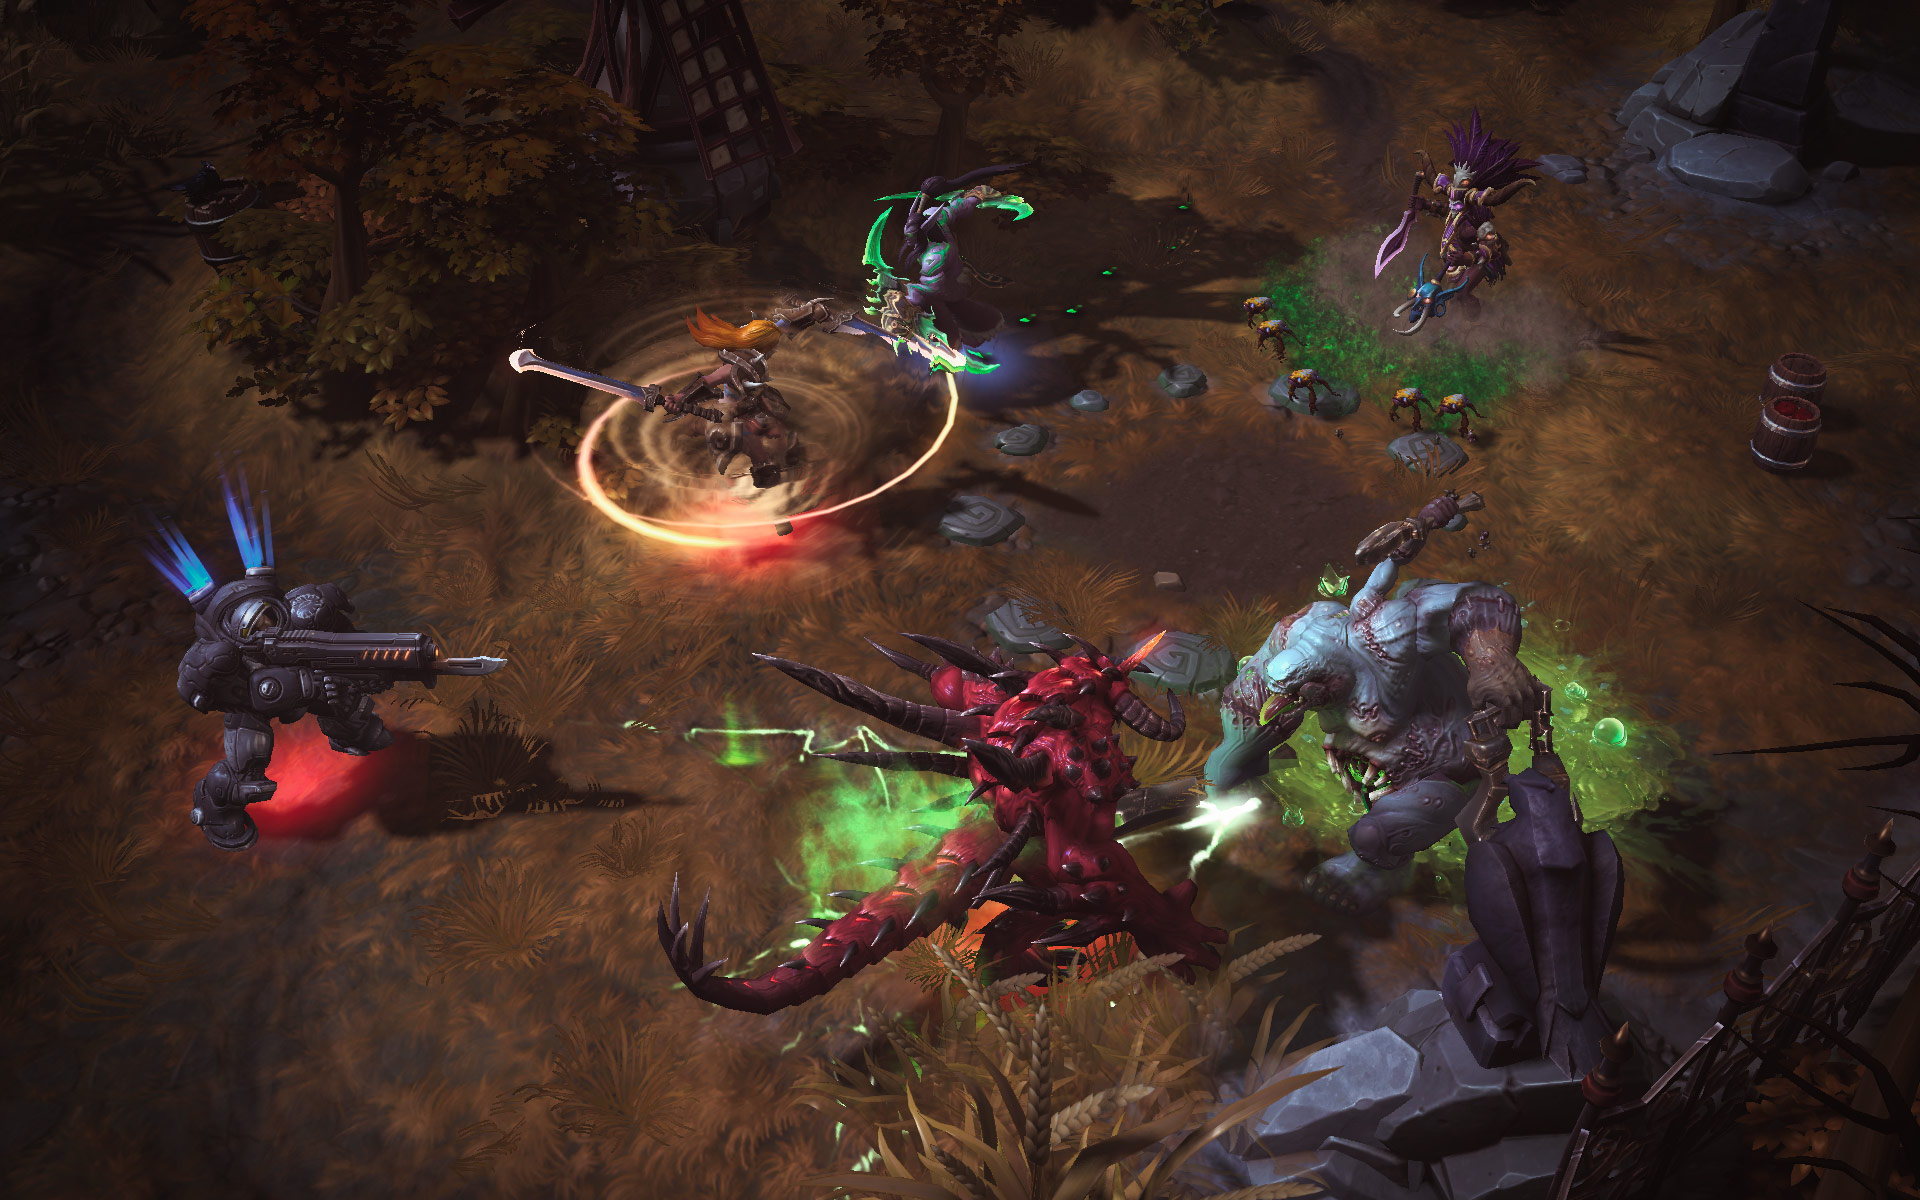 Heroes Of The Storm: Universes Collide In First Gameplay Trailer And Screenshots #29624